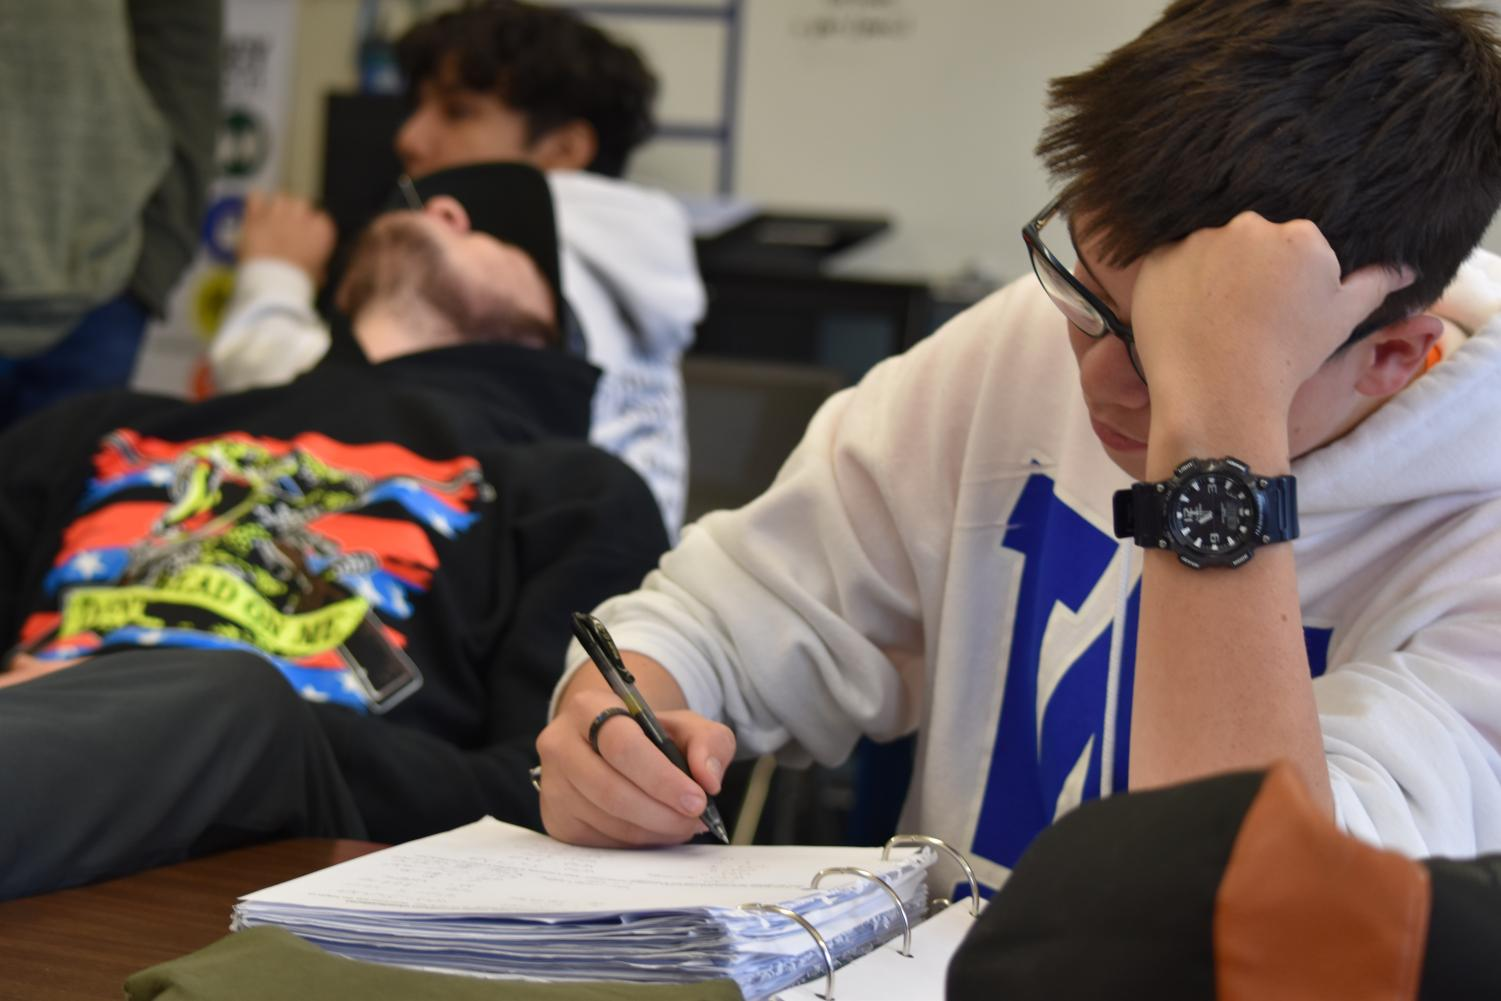 Senior Elijah Price has spent his high school career grade-focused and is now taking the steps needed to apply for college. The rising cost is in the back of his mind, though. Photo by Madisun Tobisch.